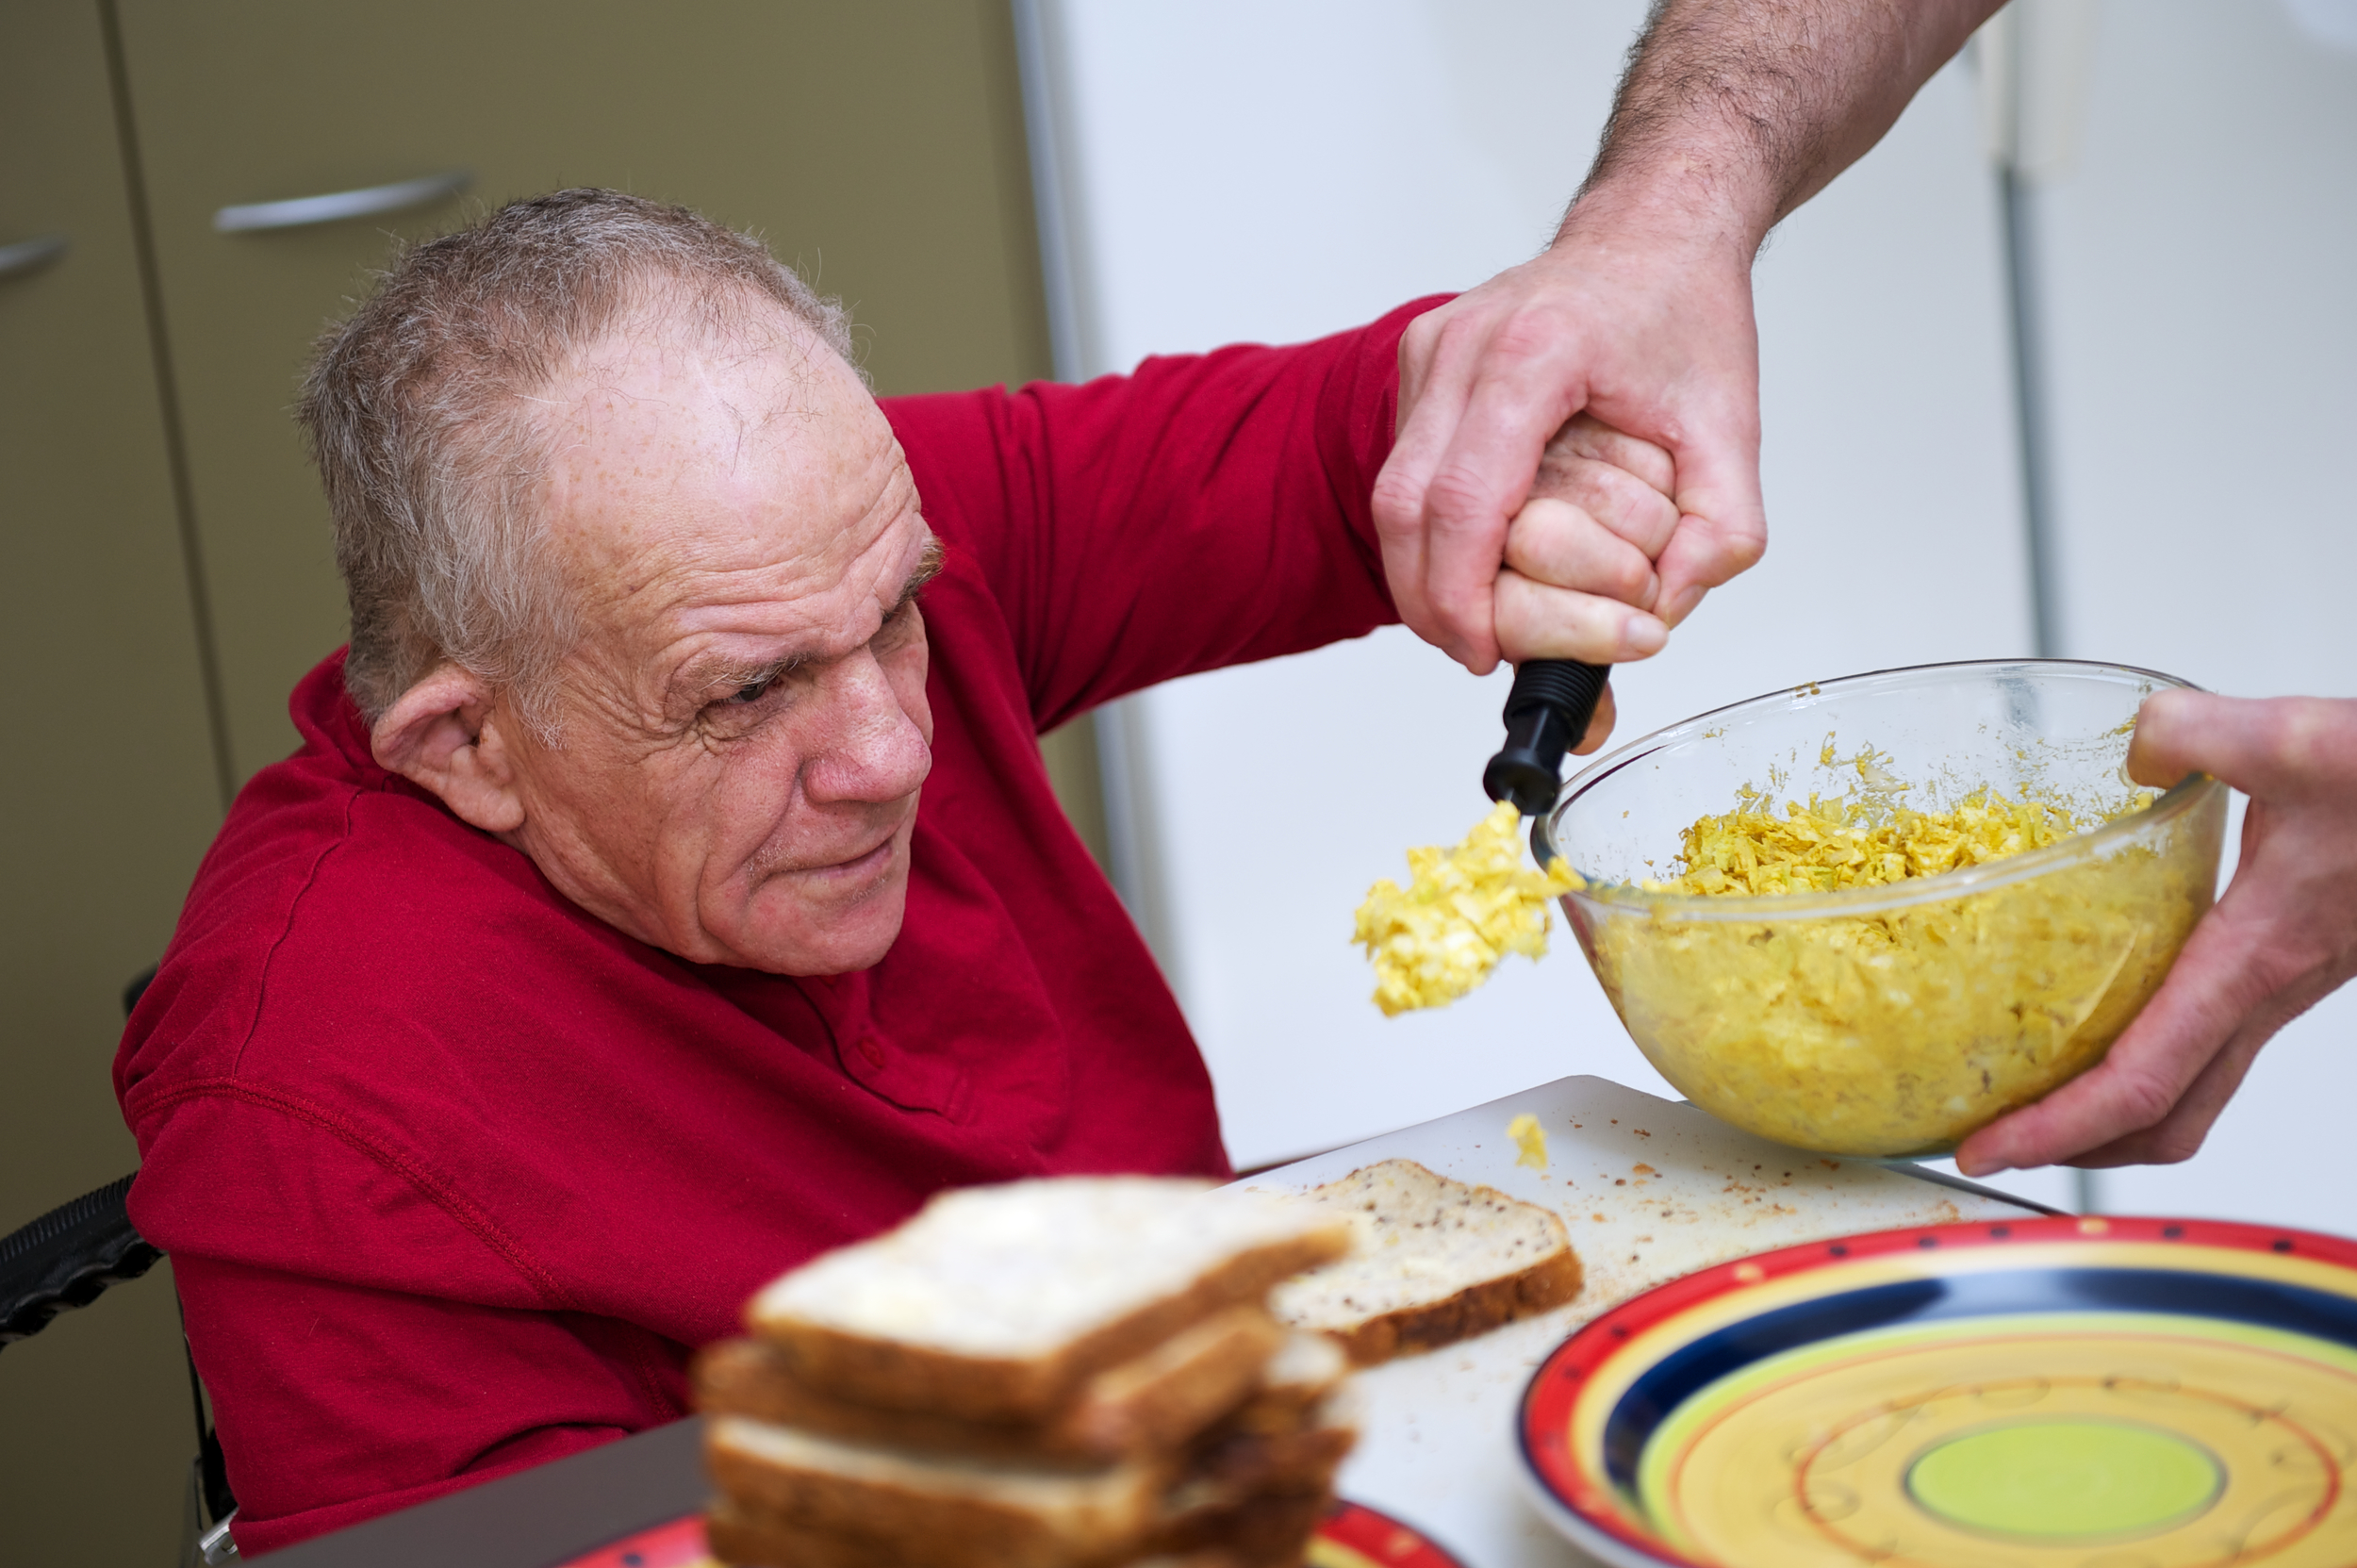 senior man with a disability being helped in kitchen.jpg